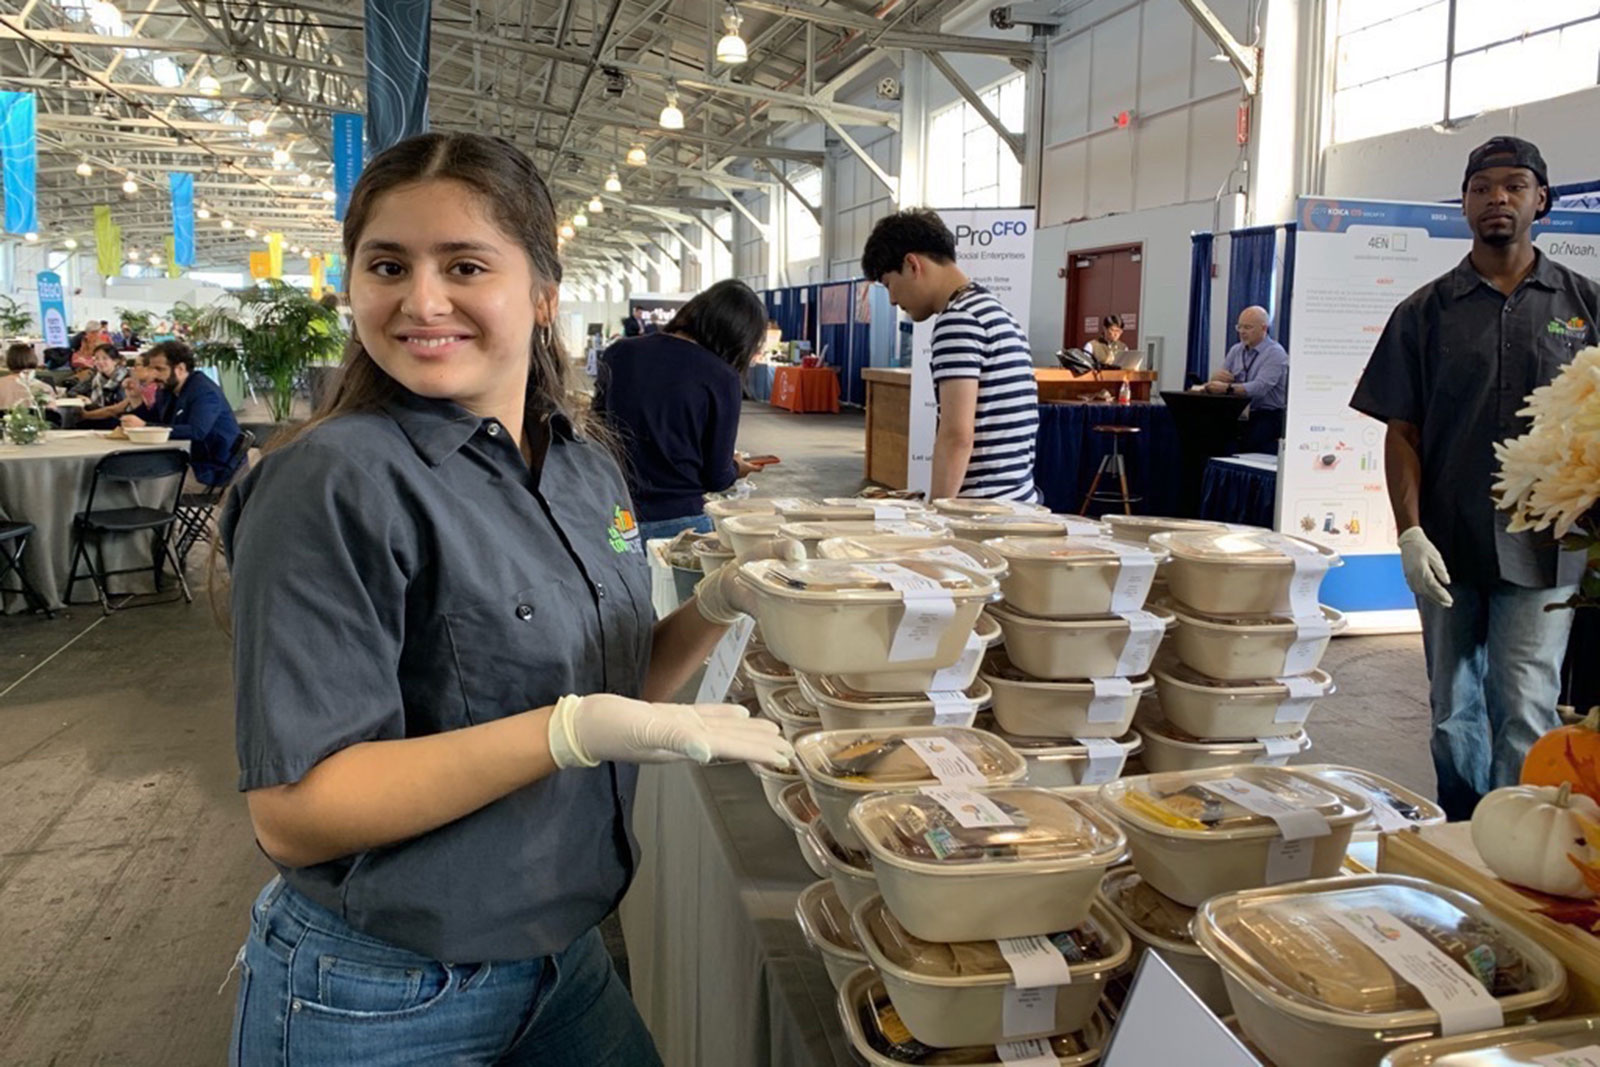 A worker from The Town Kitchen stands by a table of catered food at an event